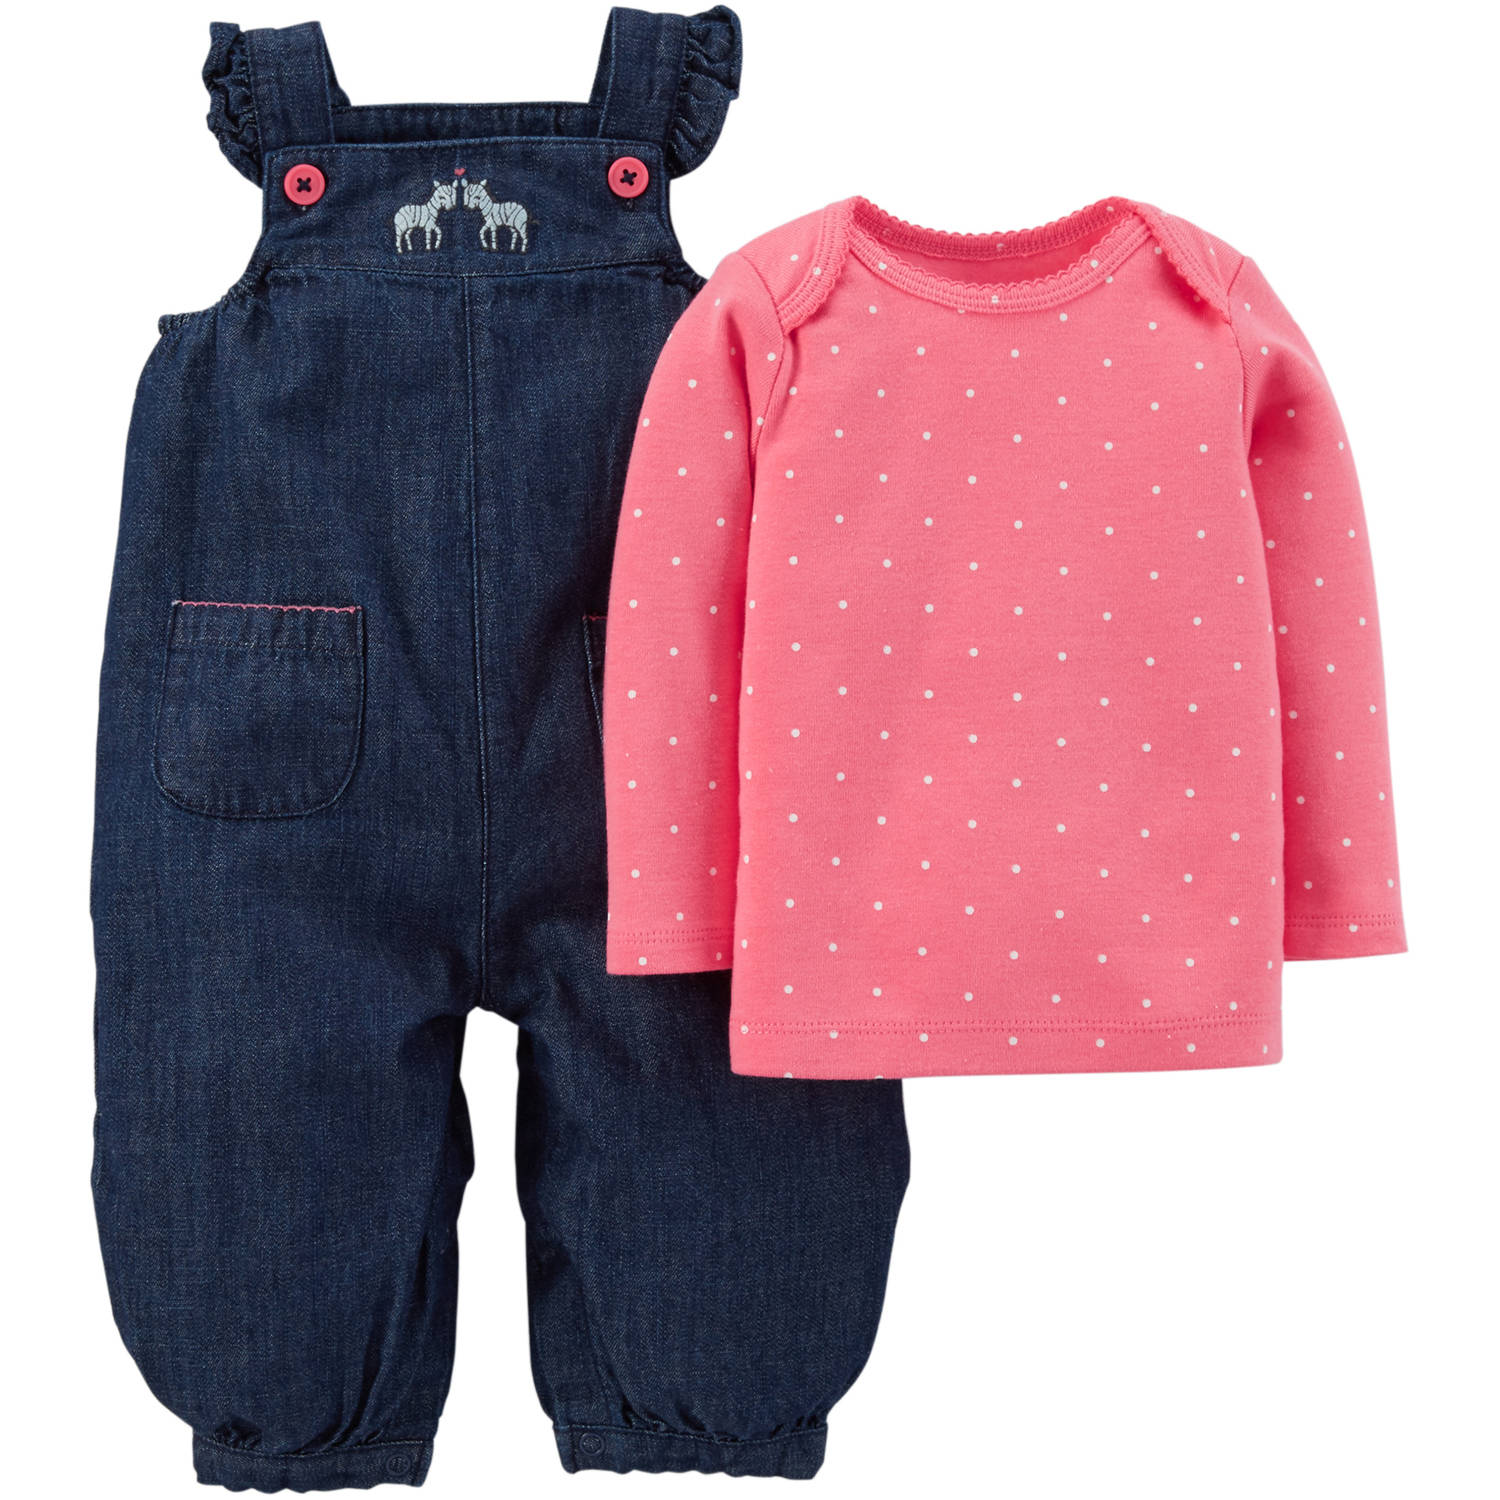 Child Of Mine by Carter's Newborn Baby Overalls and Tshirt Outfit Set